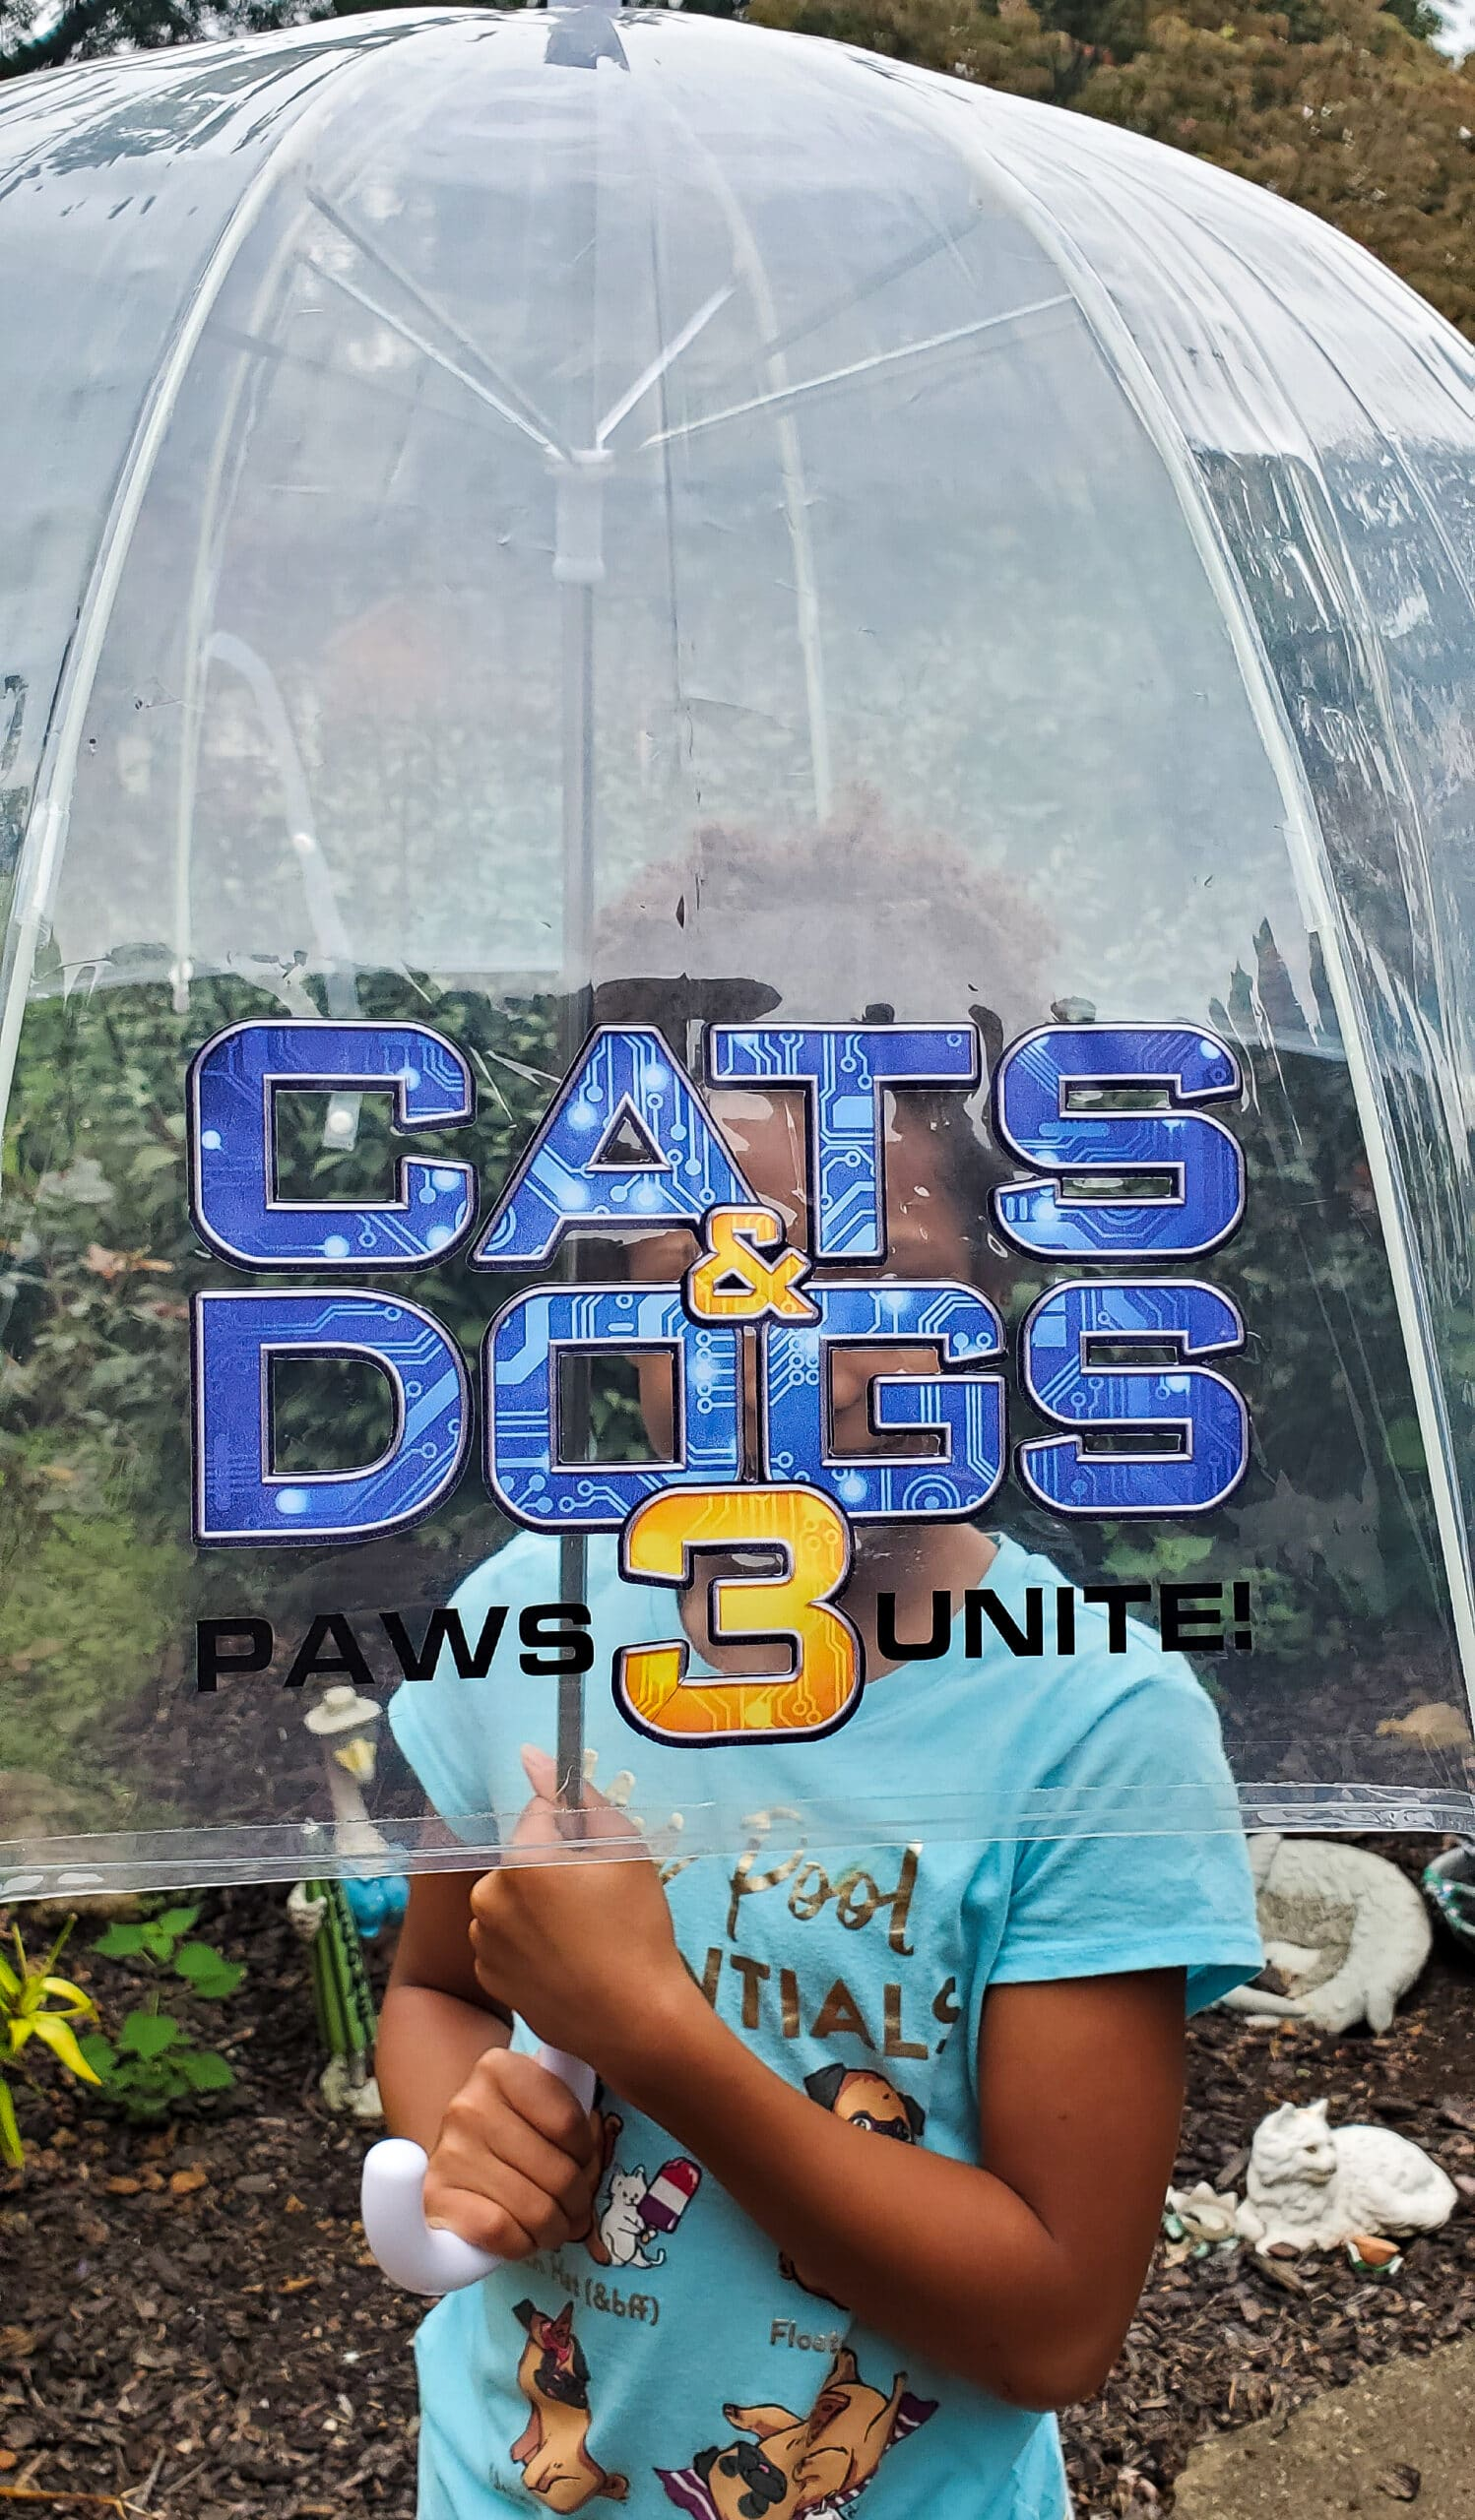 Cats and Dogs 3: Paws Unite! Umbrella. Discover who has the upper paw in Cats & Dogs 3: Paws Unite!,the next feature-length installment of the popular Cats & Dogs franchise from Warner Bros. Home Entertainment. Available on Digital on September 15 and on both Blu-ray Combo Pack and DVD on October 13.